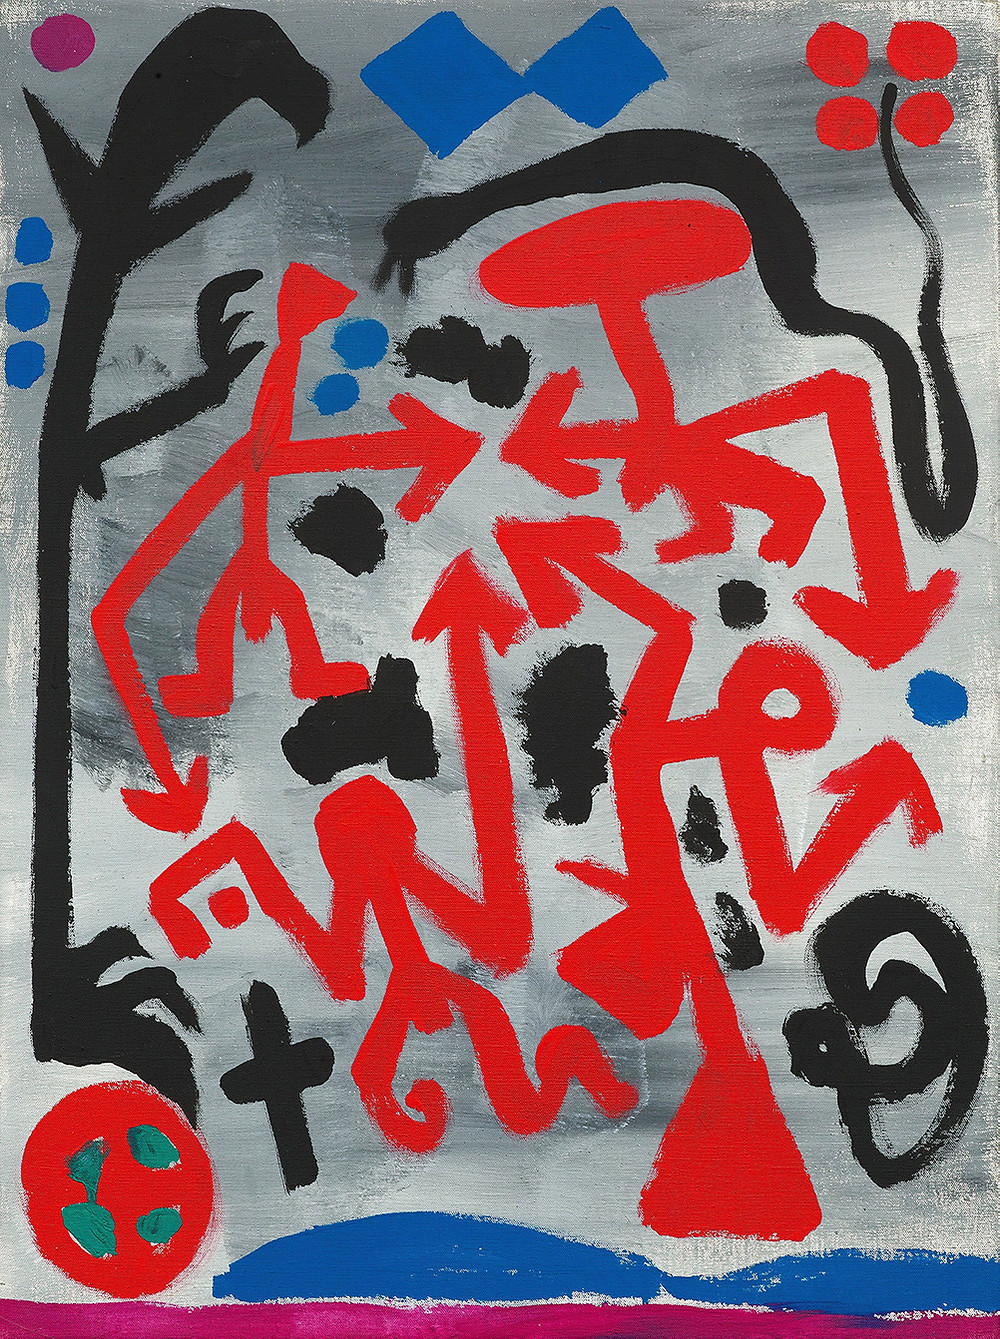 A.R. Penck (1939–2017) Libanon II, 1987 Acrylic on canvas, 80 x 60 cm Private collection. © DACS, 2019